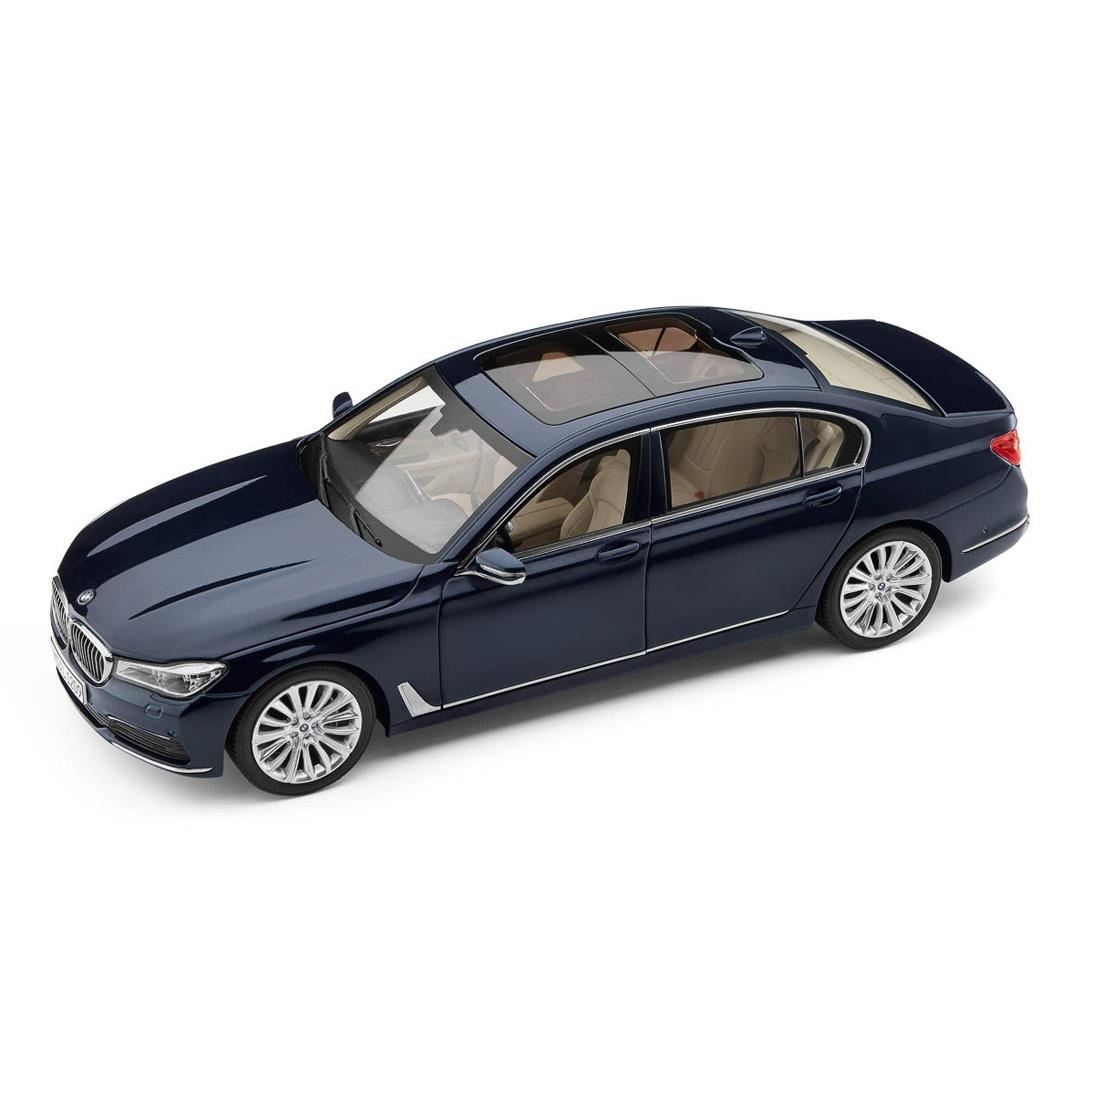 BMW G12 7 Series Long Version Miniature 1:18